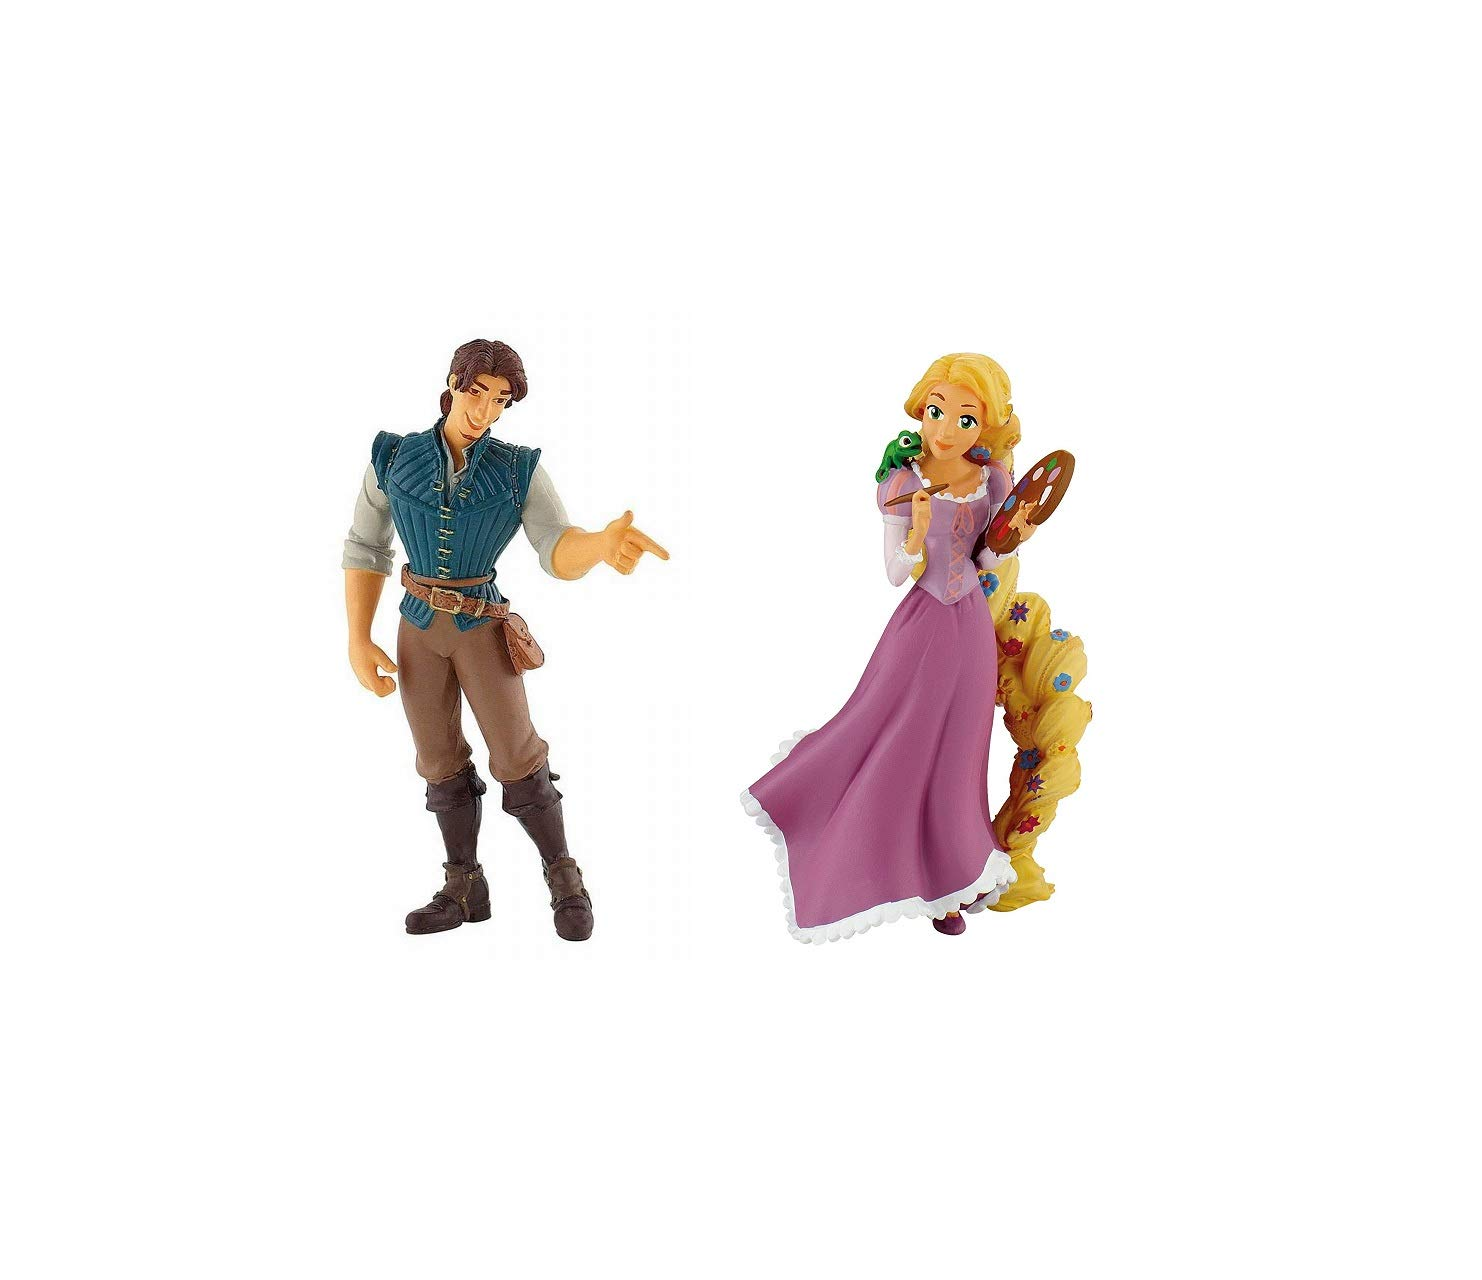 Disney Princess Rapunzel Painting and Flynn Rider Birthday Party Cake Toppers